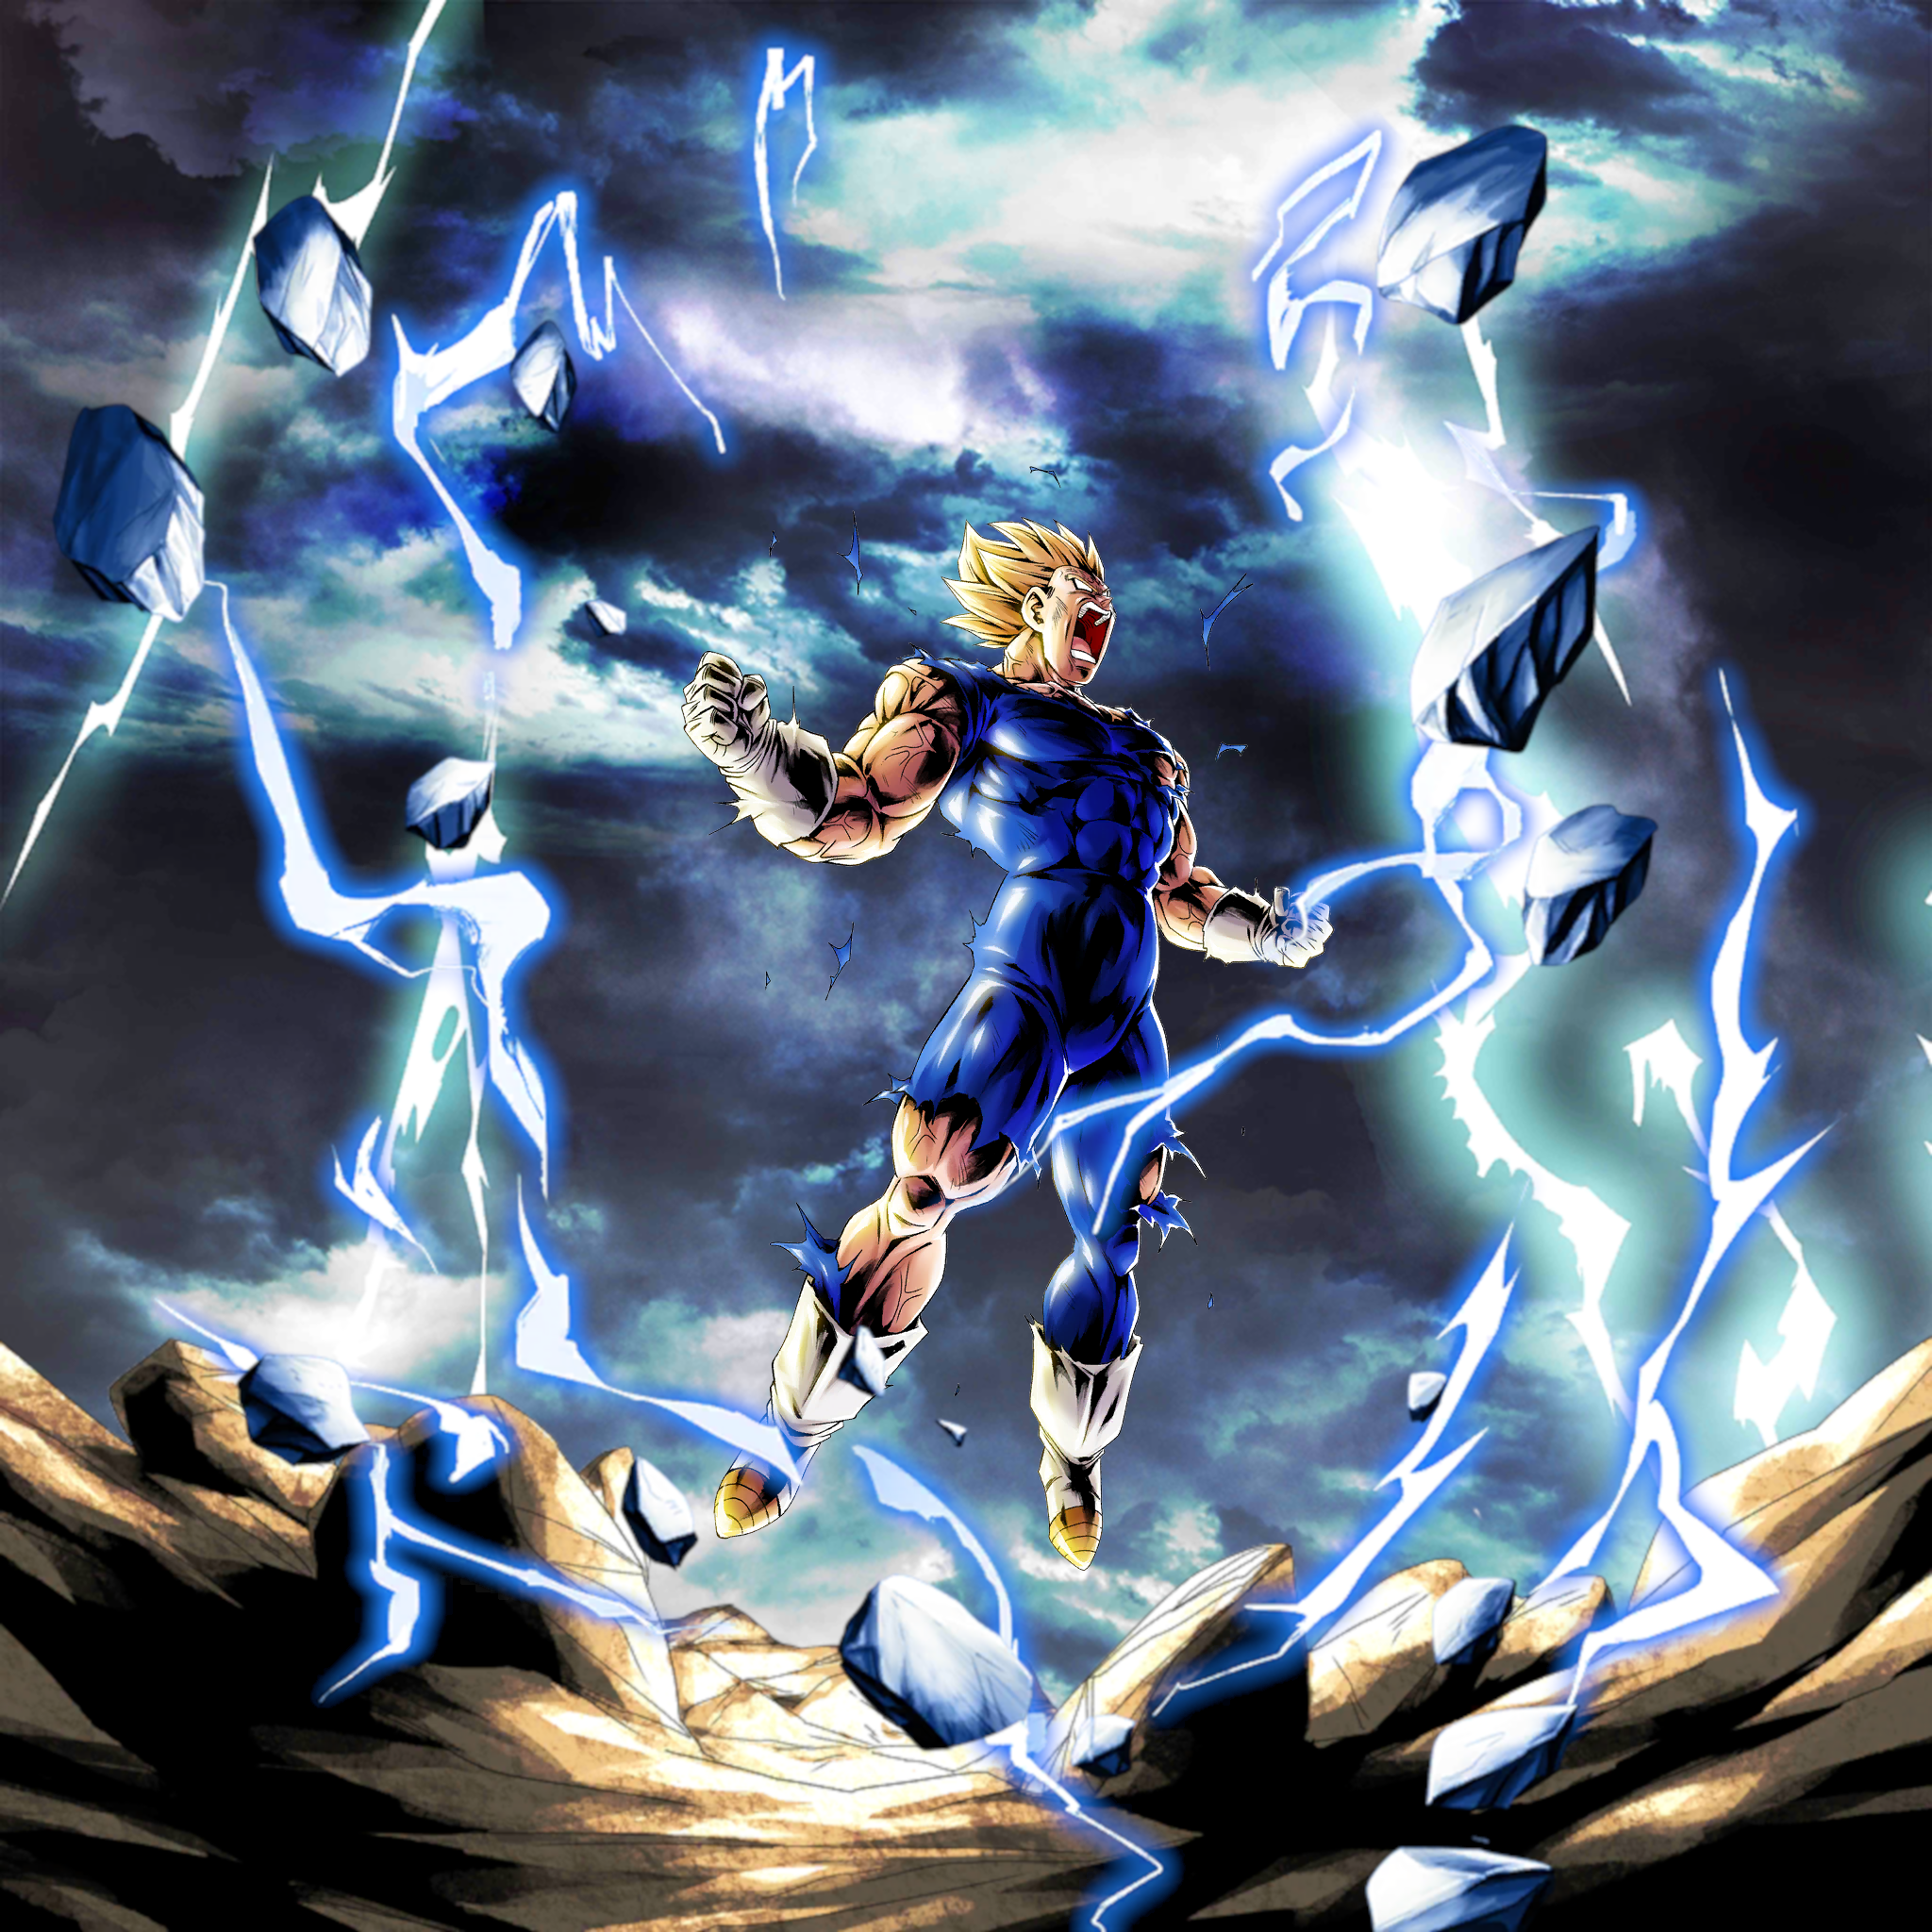 Majin Vegeta Wallpaper Posted By Ethan Thompson